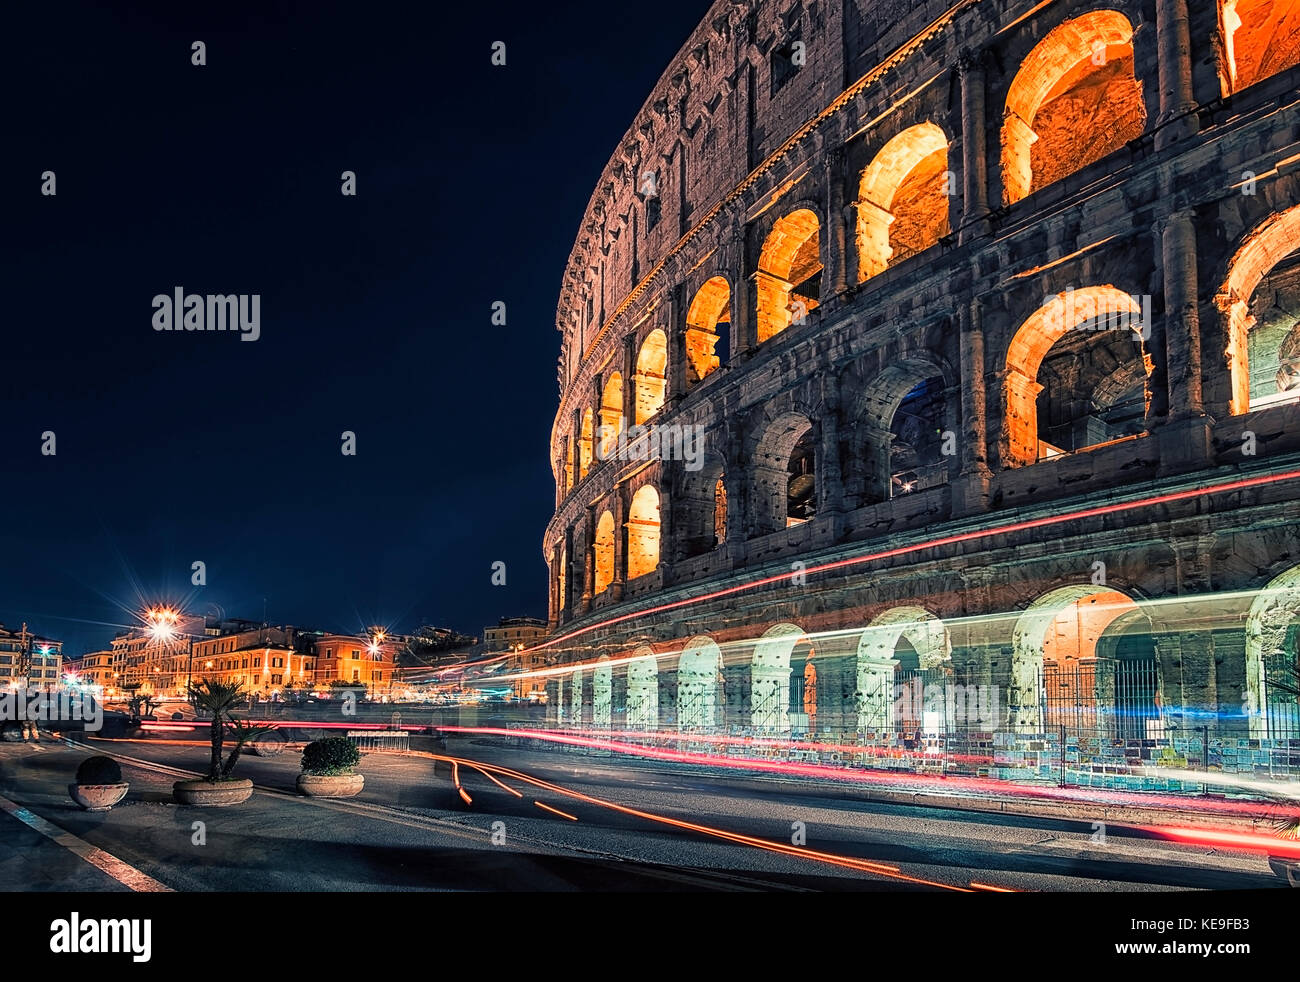 The Colosseum in Rome, Italy - Stock Image